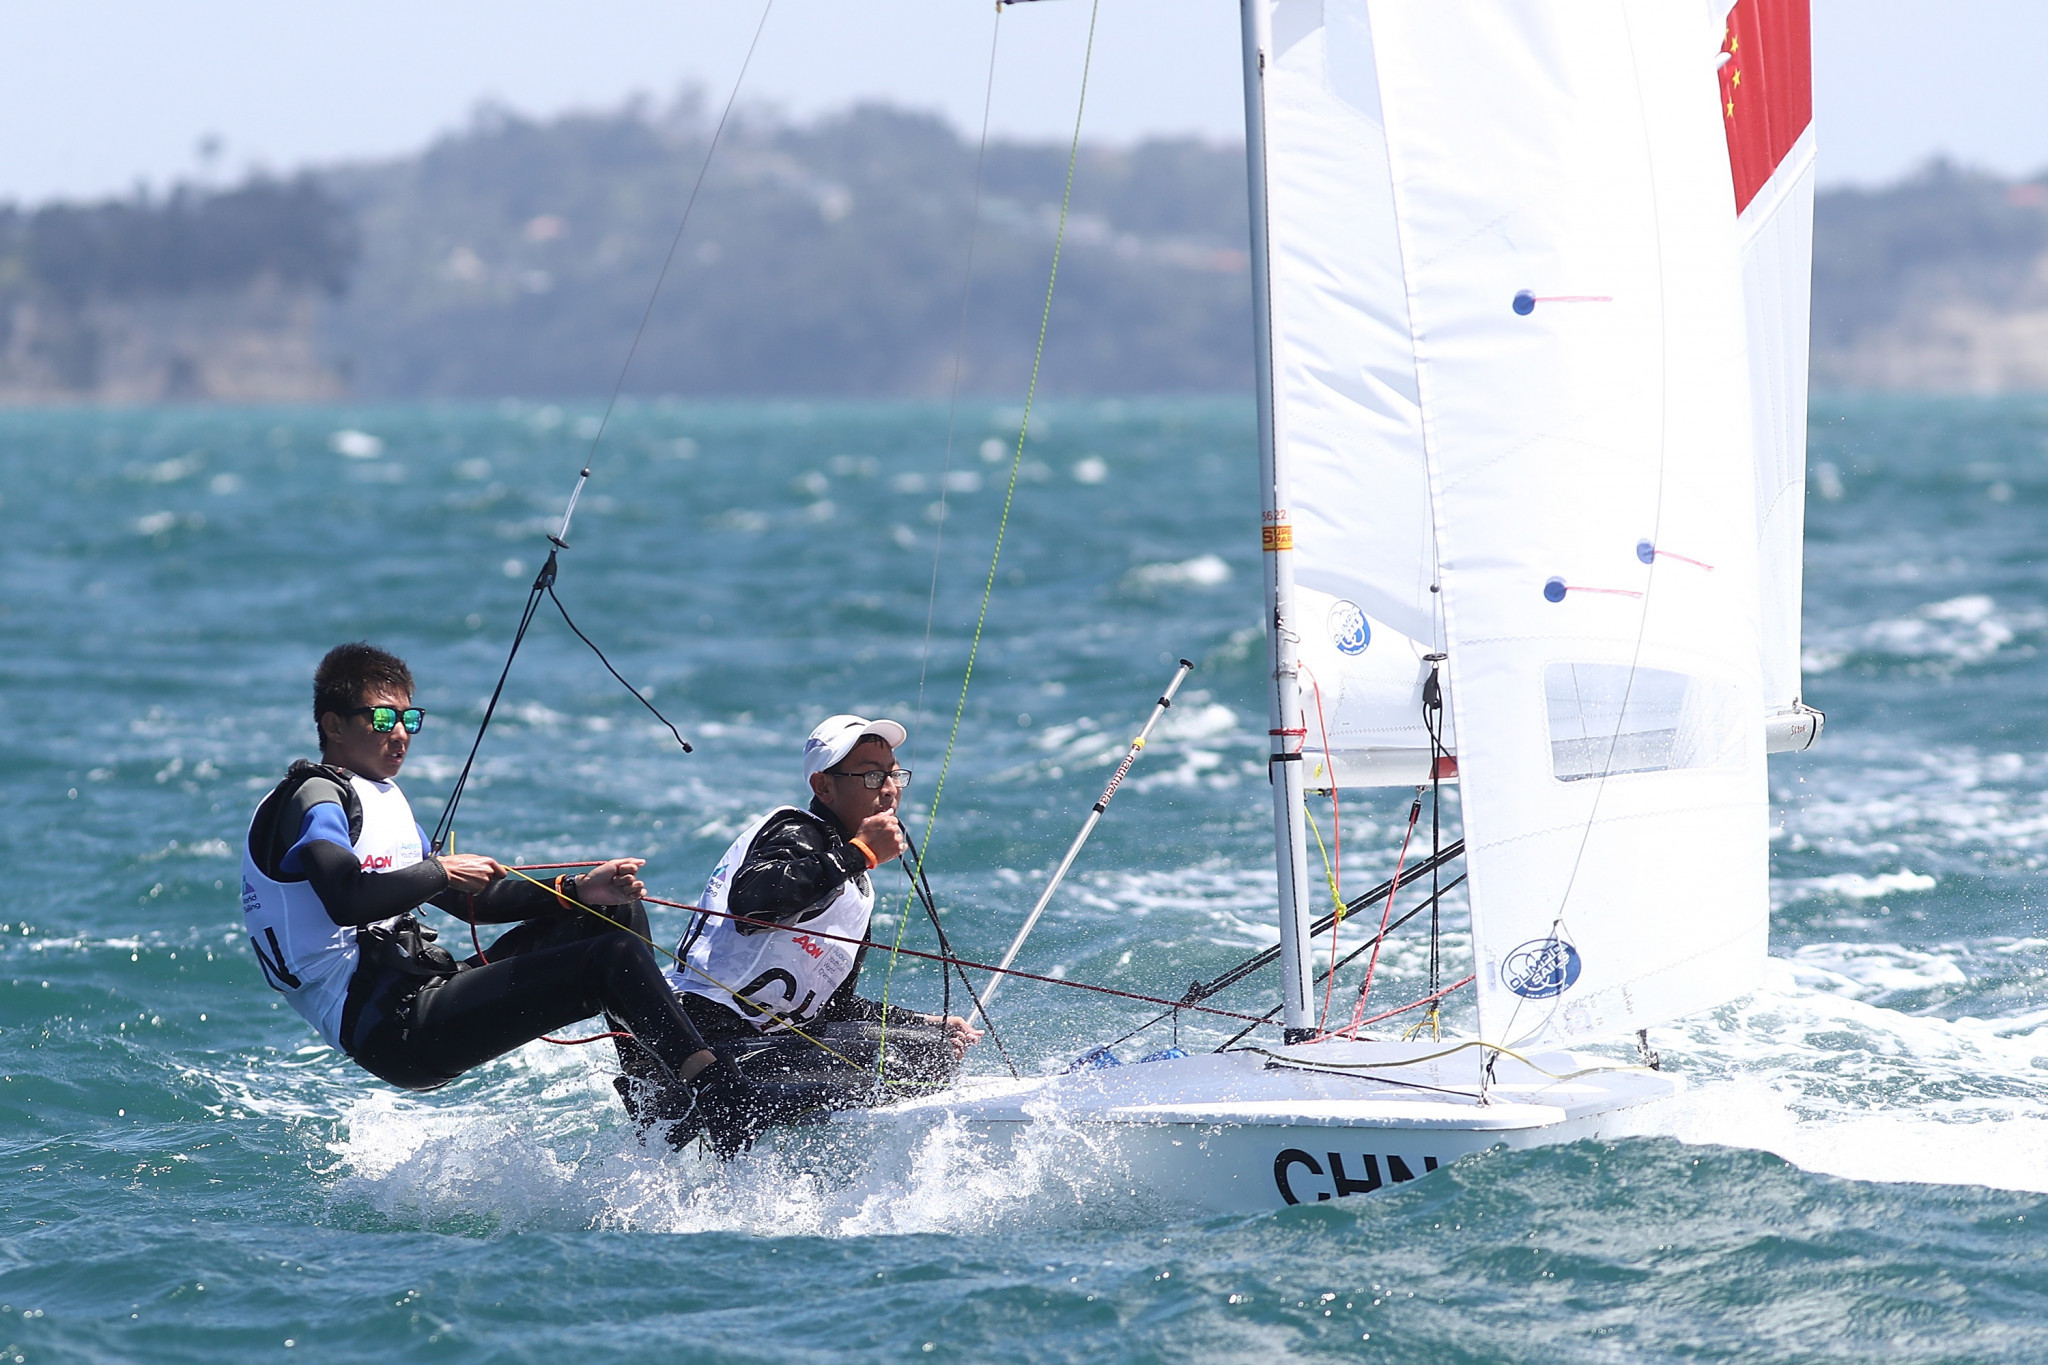 World Sailing open bidding for 2021 and 2022 Youth Sailing World Championships